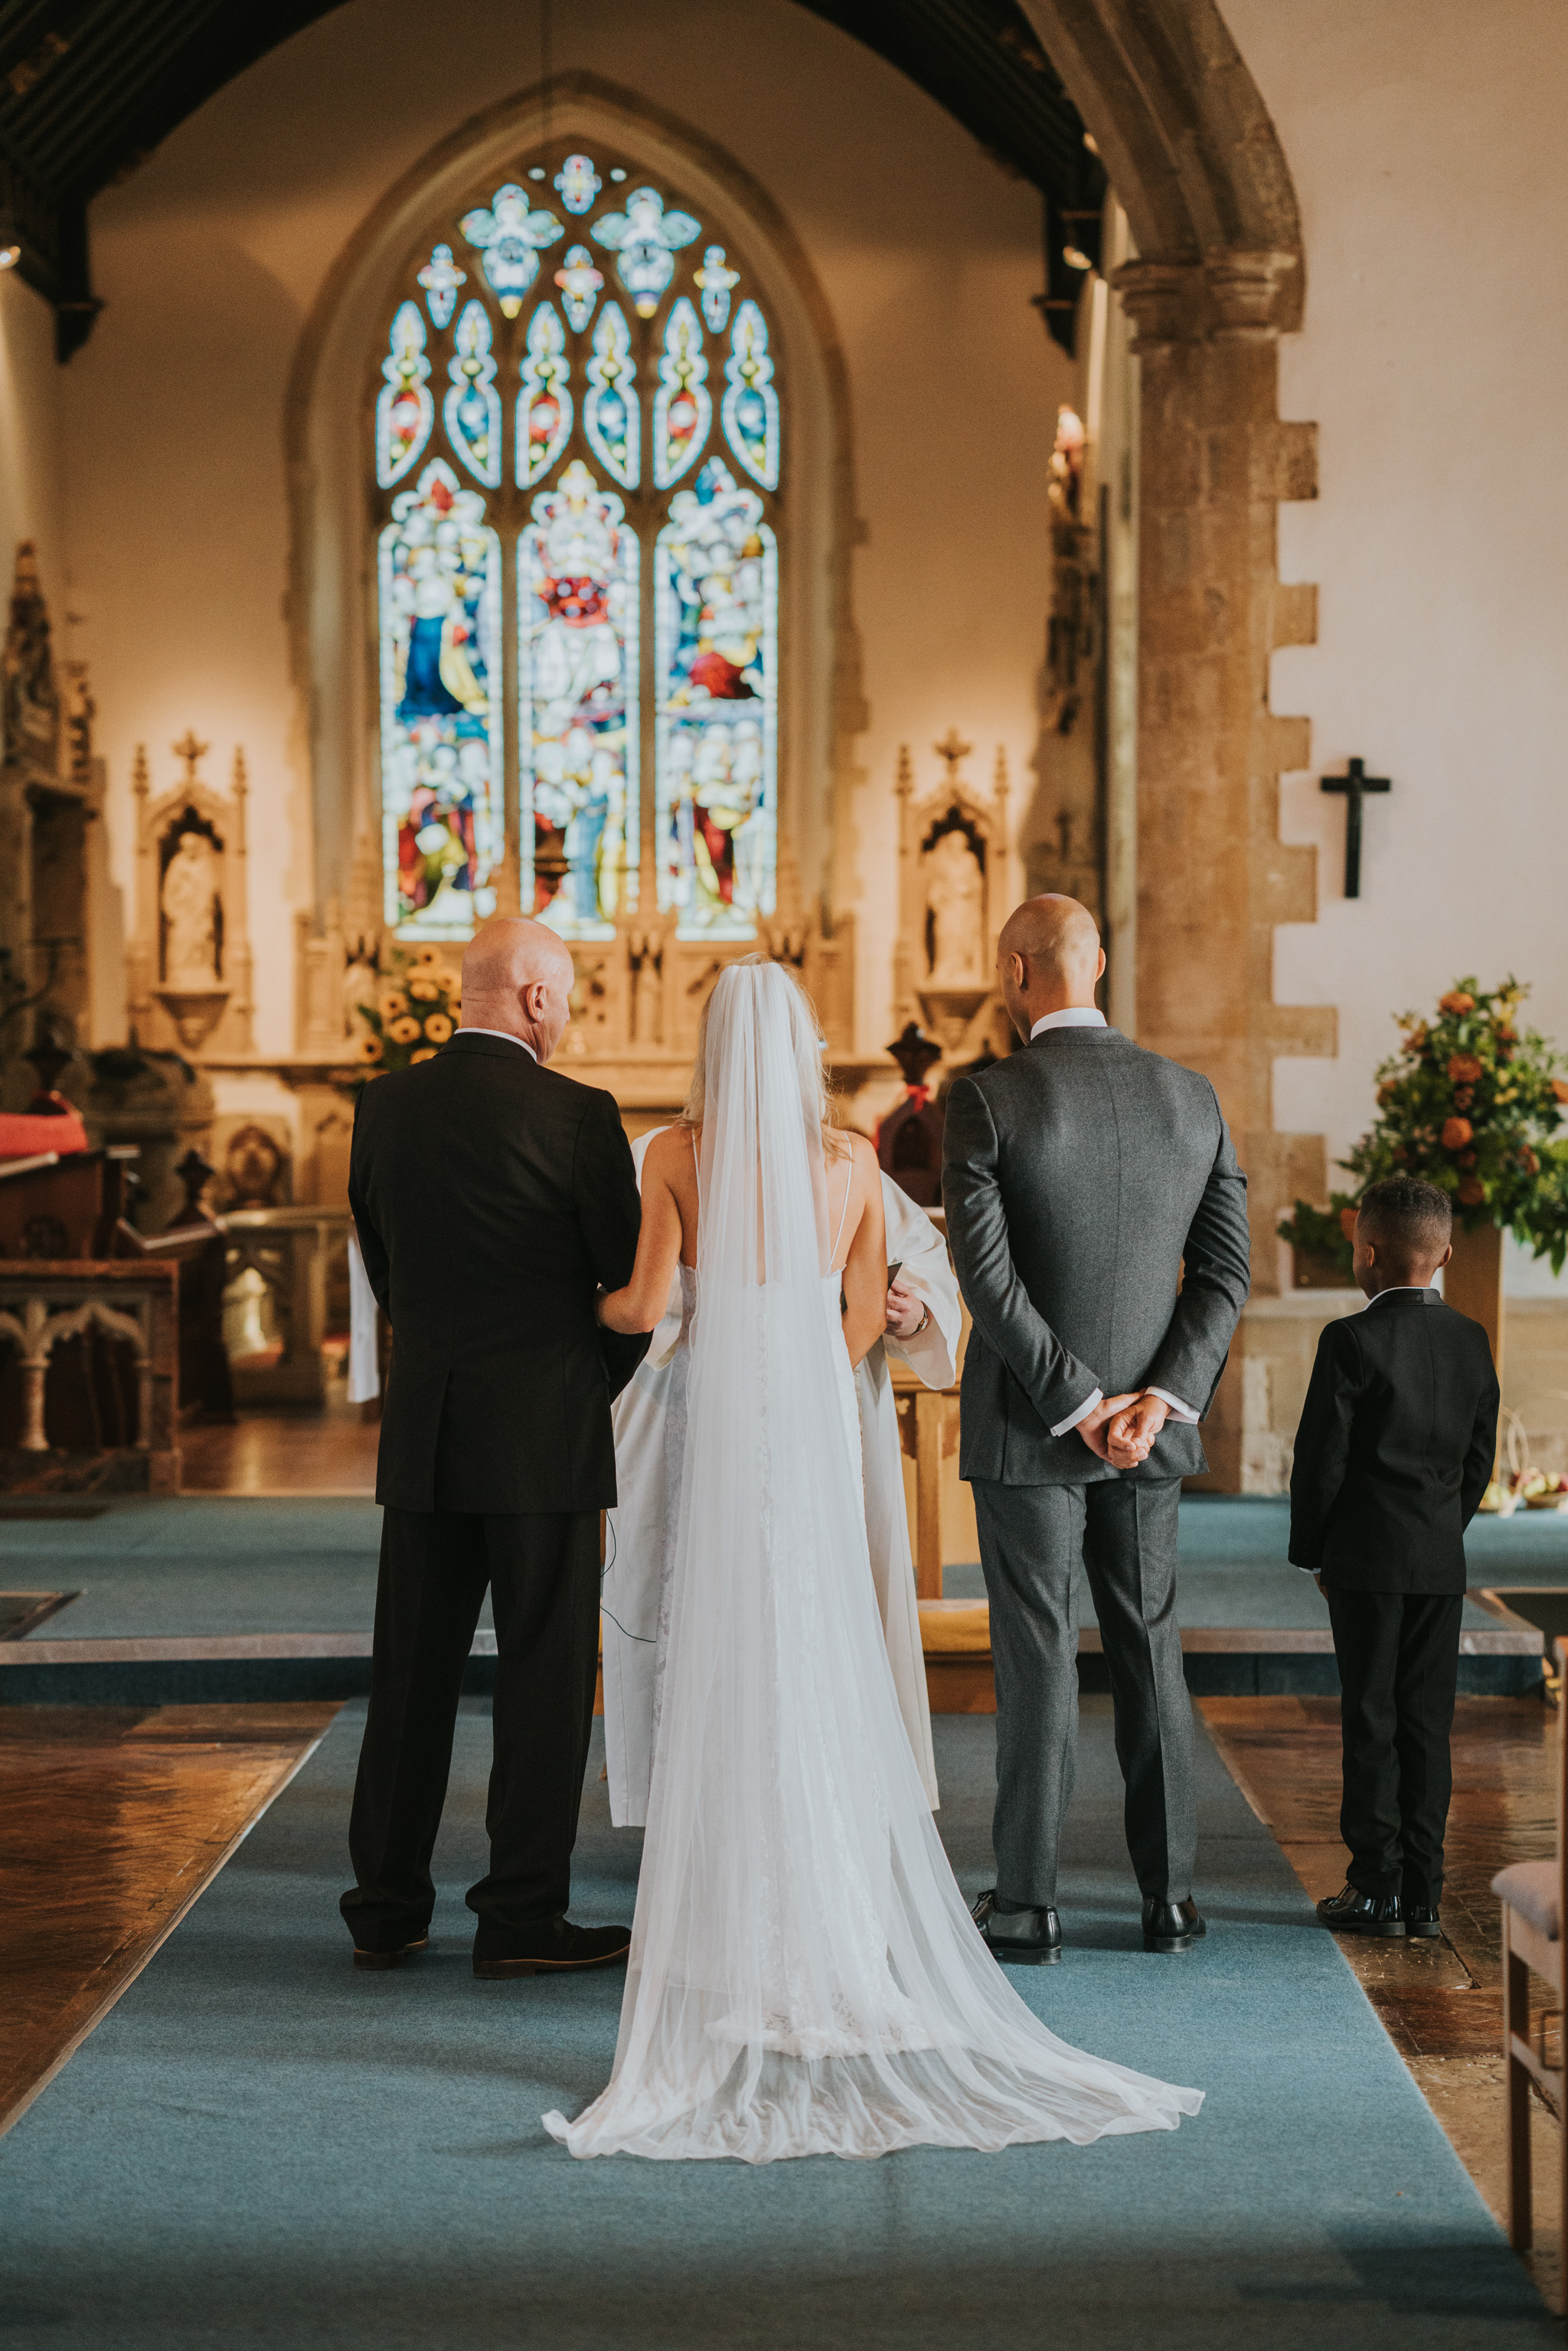 intimate-english-church-wedding-sarah-alex-colchester-essex-grace-elizabeth-colchester-essex-alternative-wedding-lifestyle-photographer-essex-suffolk-norfolk-devon (33 of 92).jpg